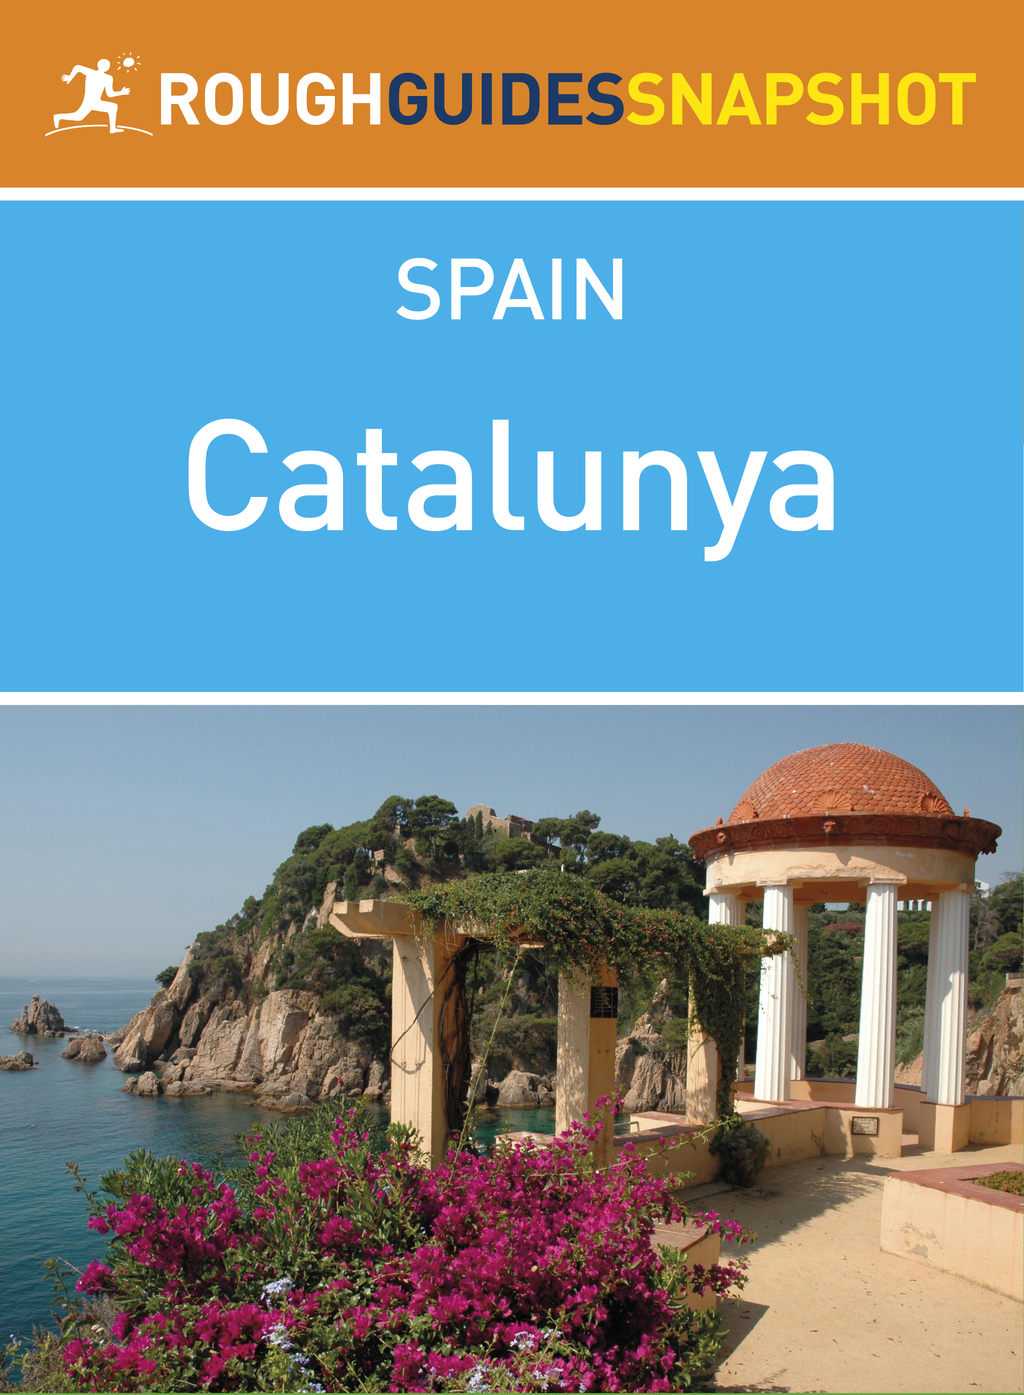 Catalunya Rough Guides Snapshot Spain (includes The Costa Brava,  Cadaqu�s,  Girona,  Figueres,  the Catalan Pyrenees,  Sitges and Tarragona)